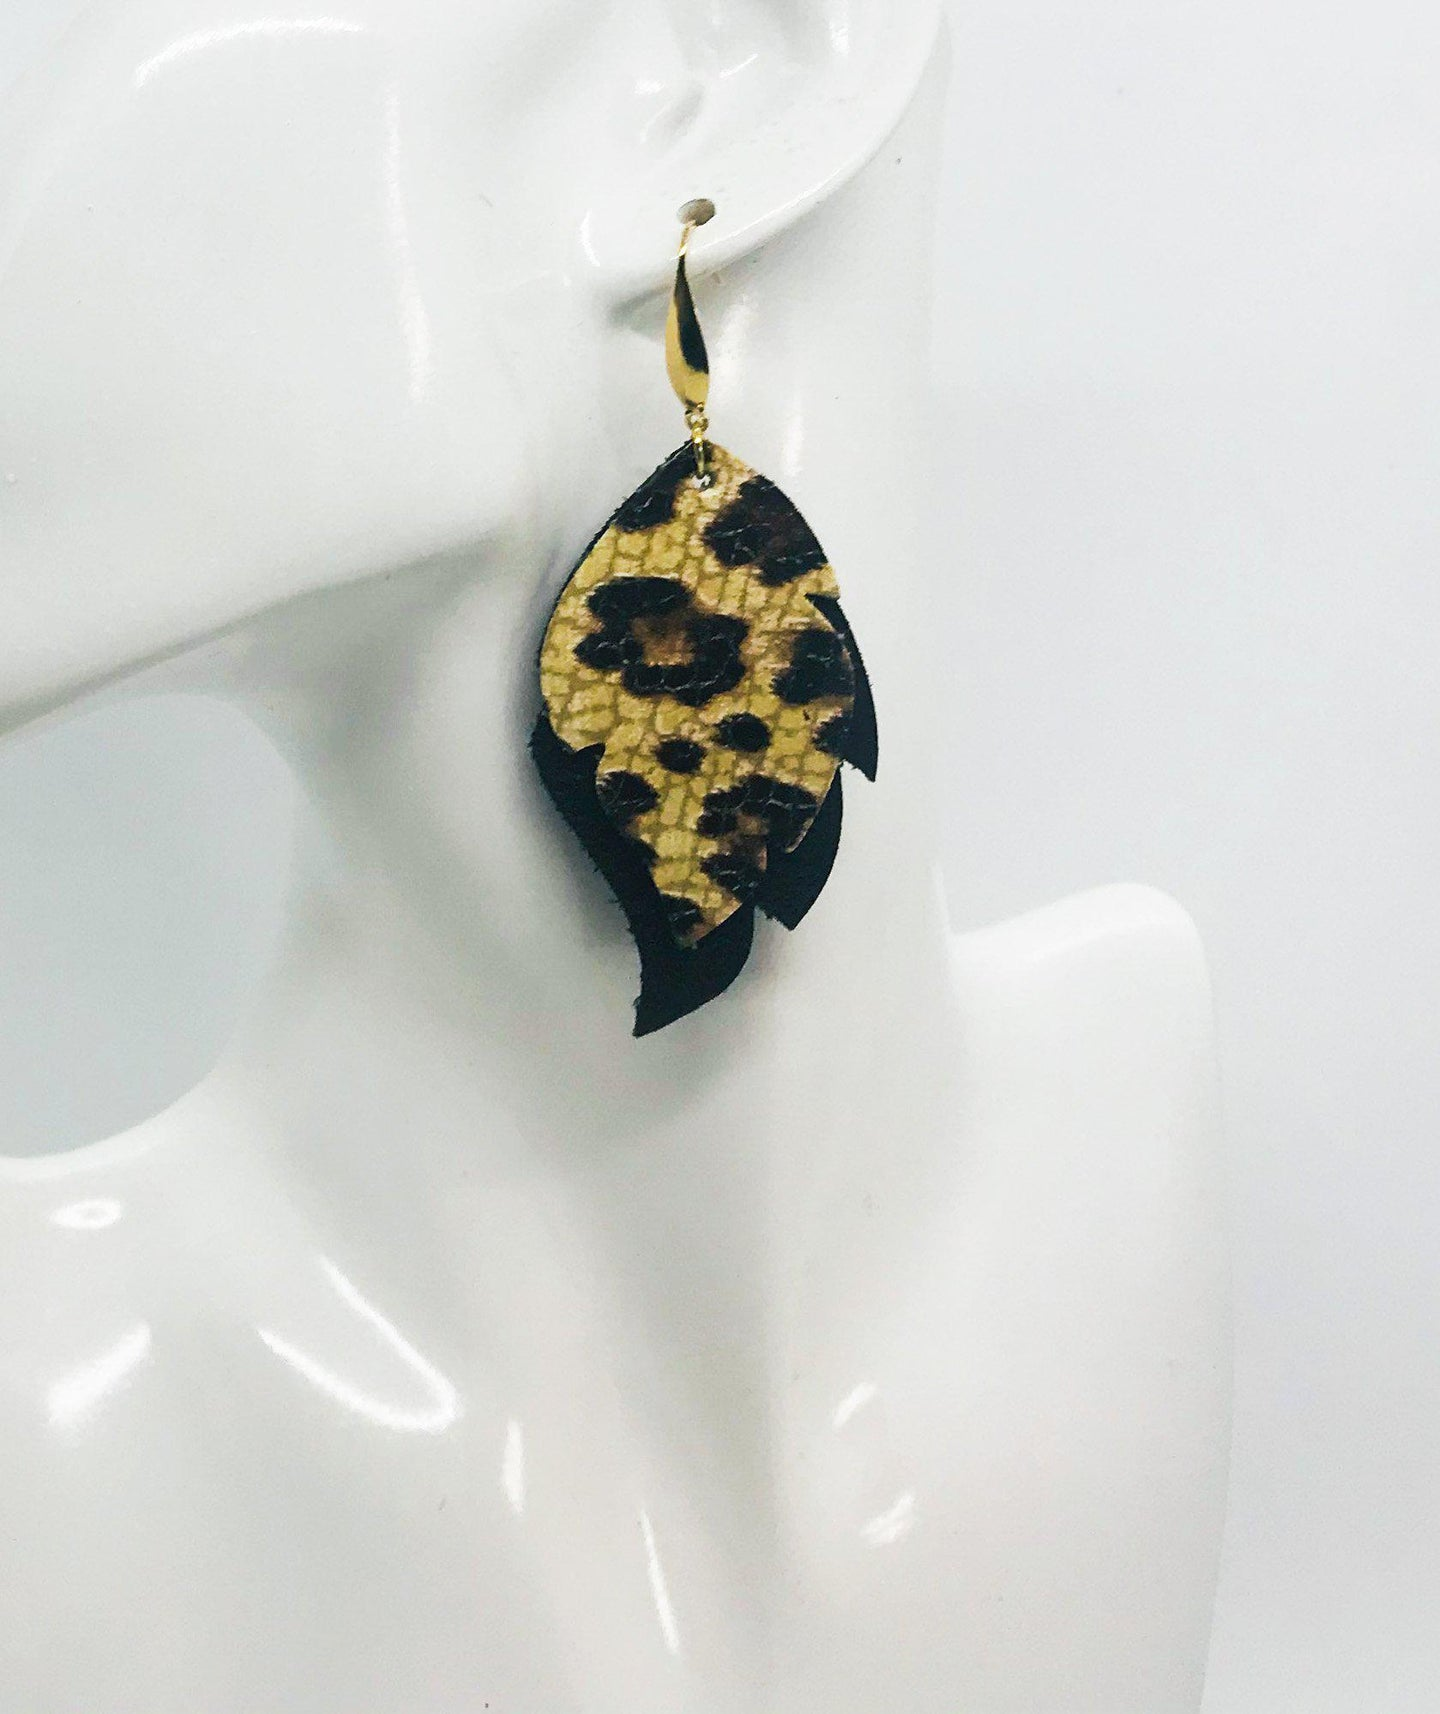 Black and Leopard Print Leather Earrings - E19-1412